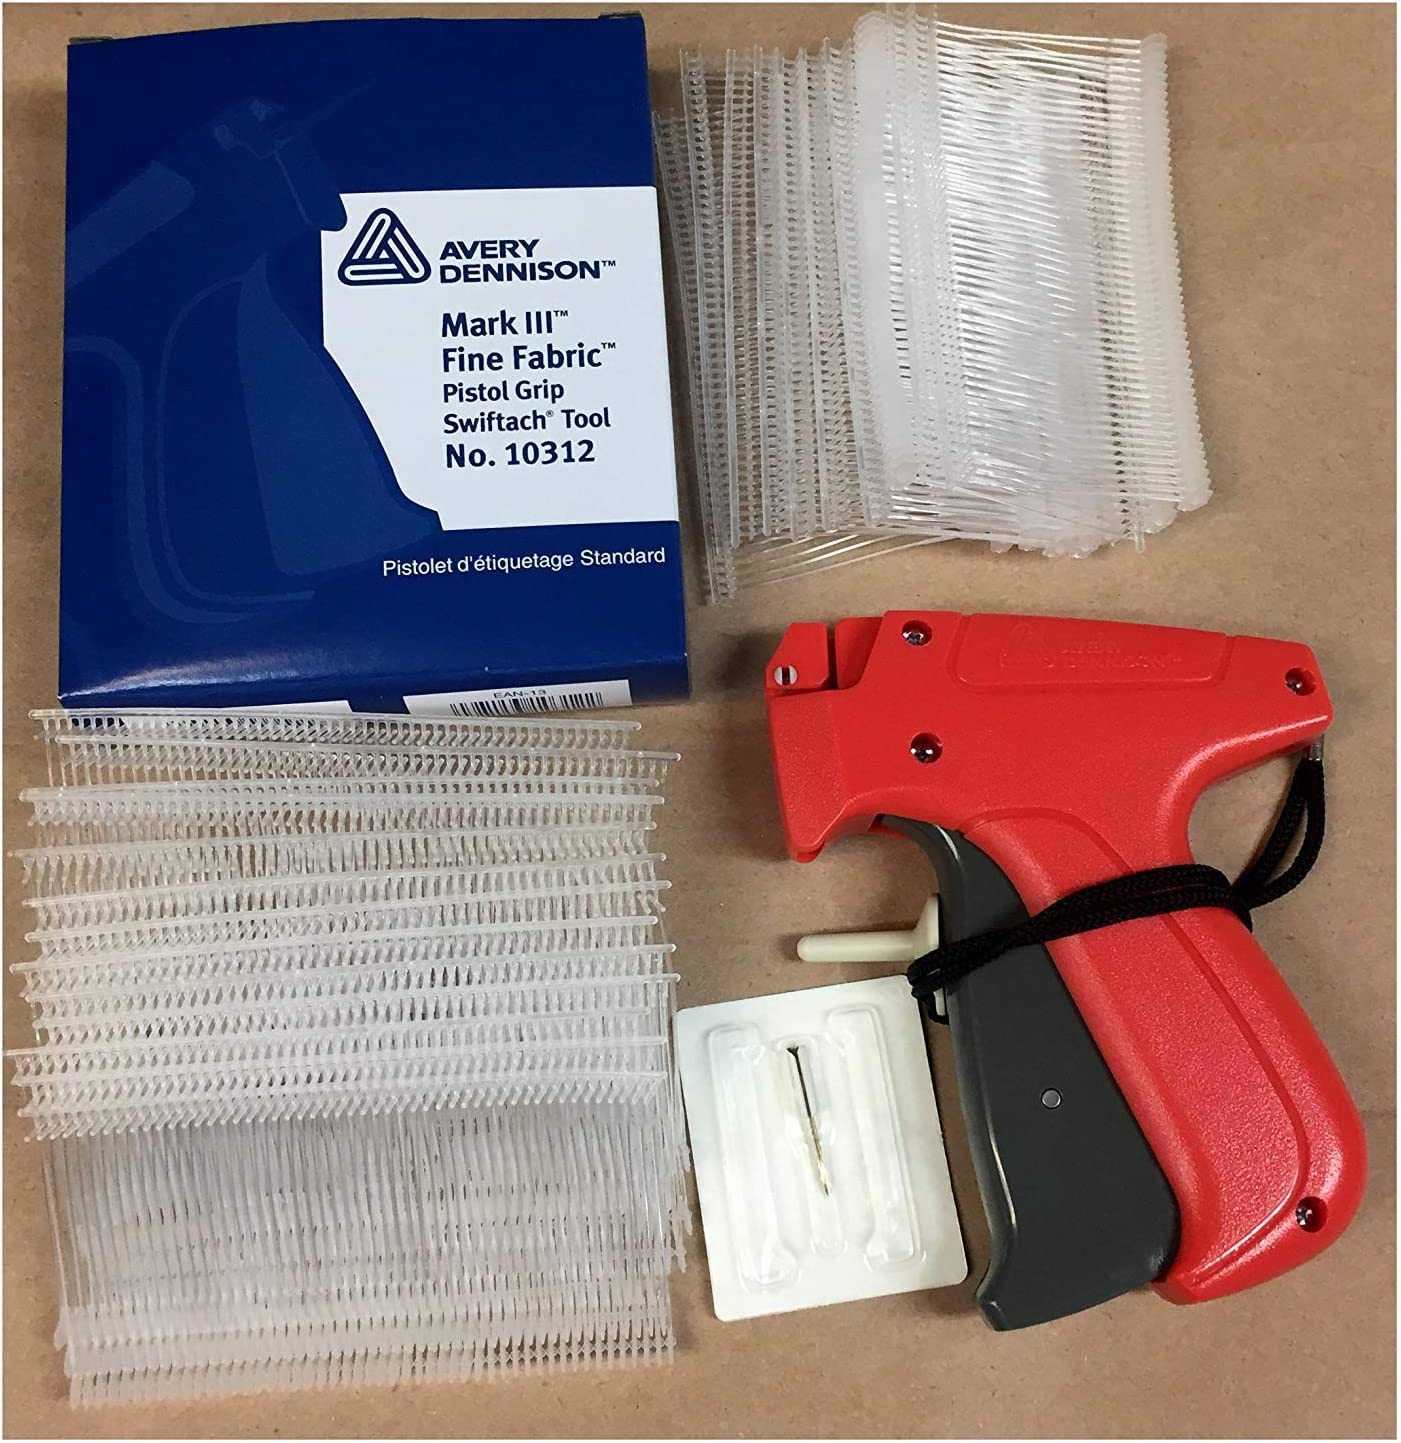 TAGGING NEEDLES FOR FINE FABRIC TAGGING GUNS 4 PACK